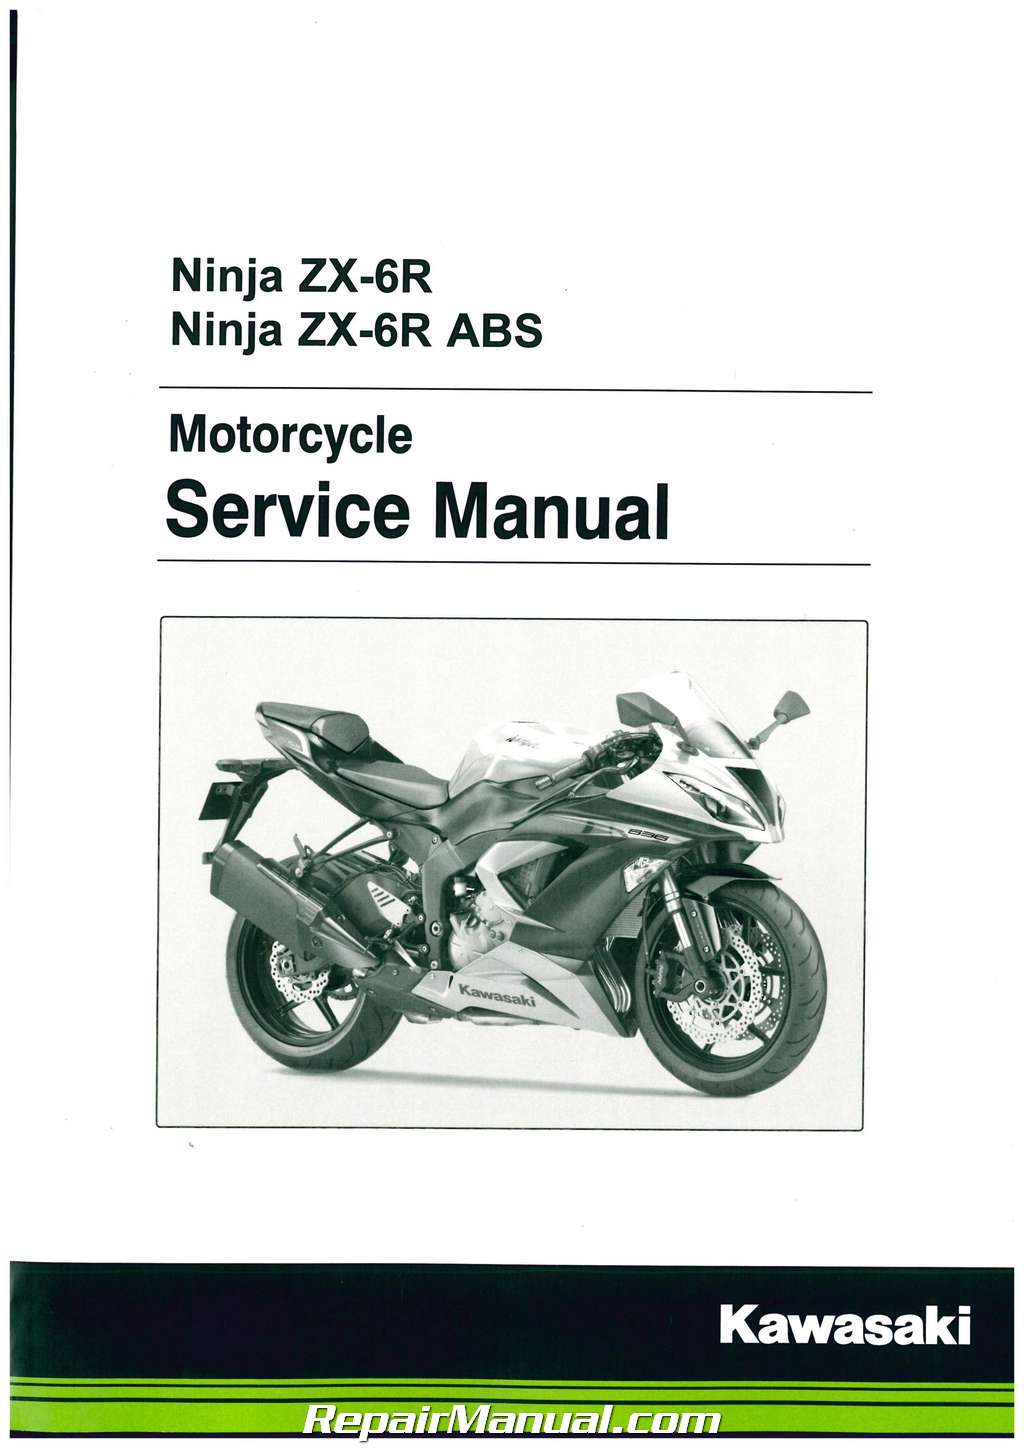 2000-2002 kawasaki ninja zx6r factory service repair manual 2001.